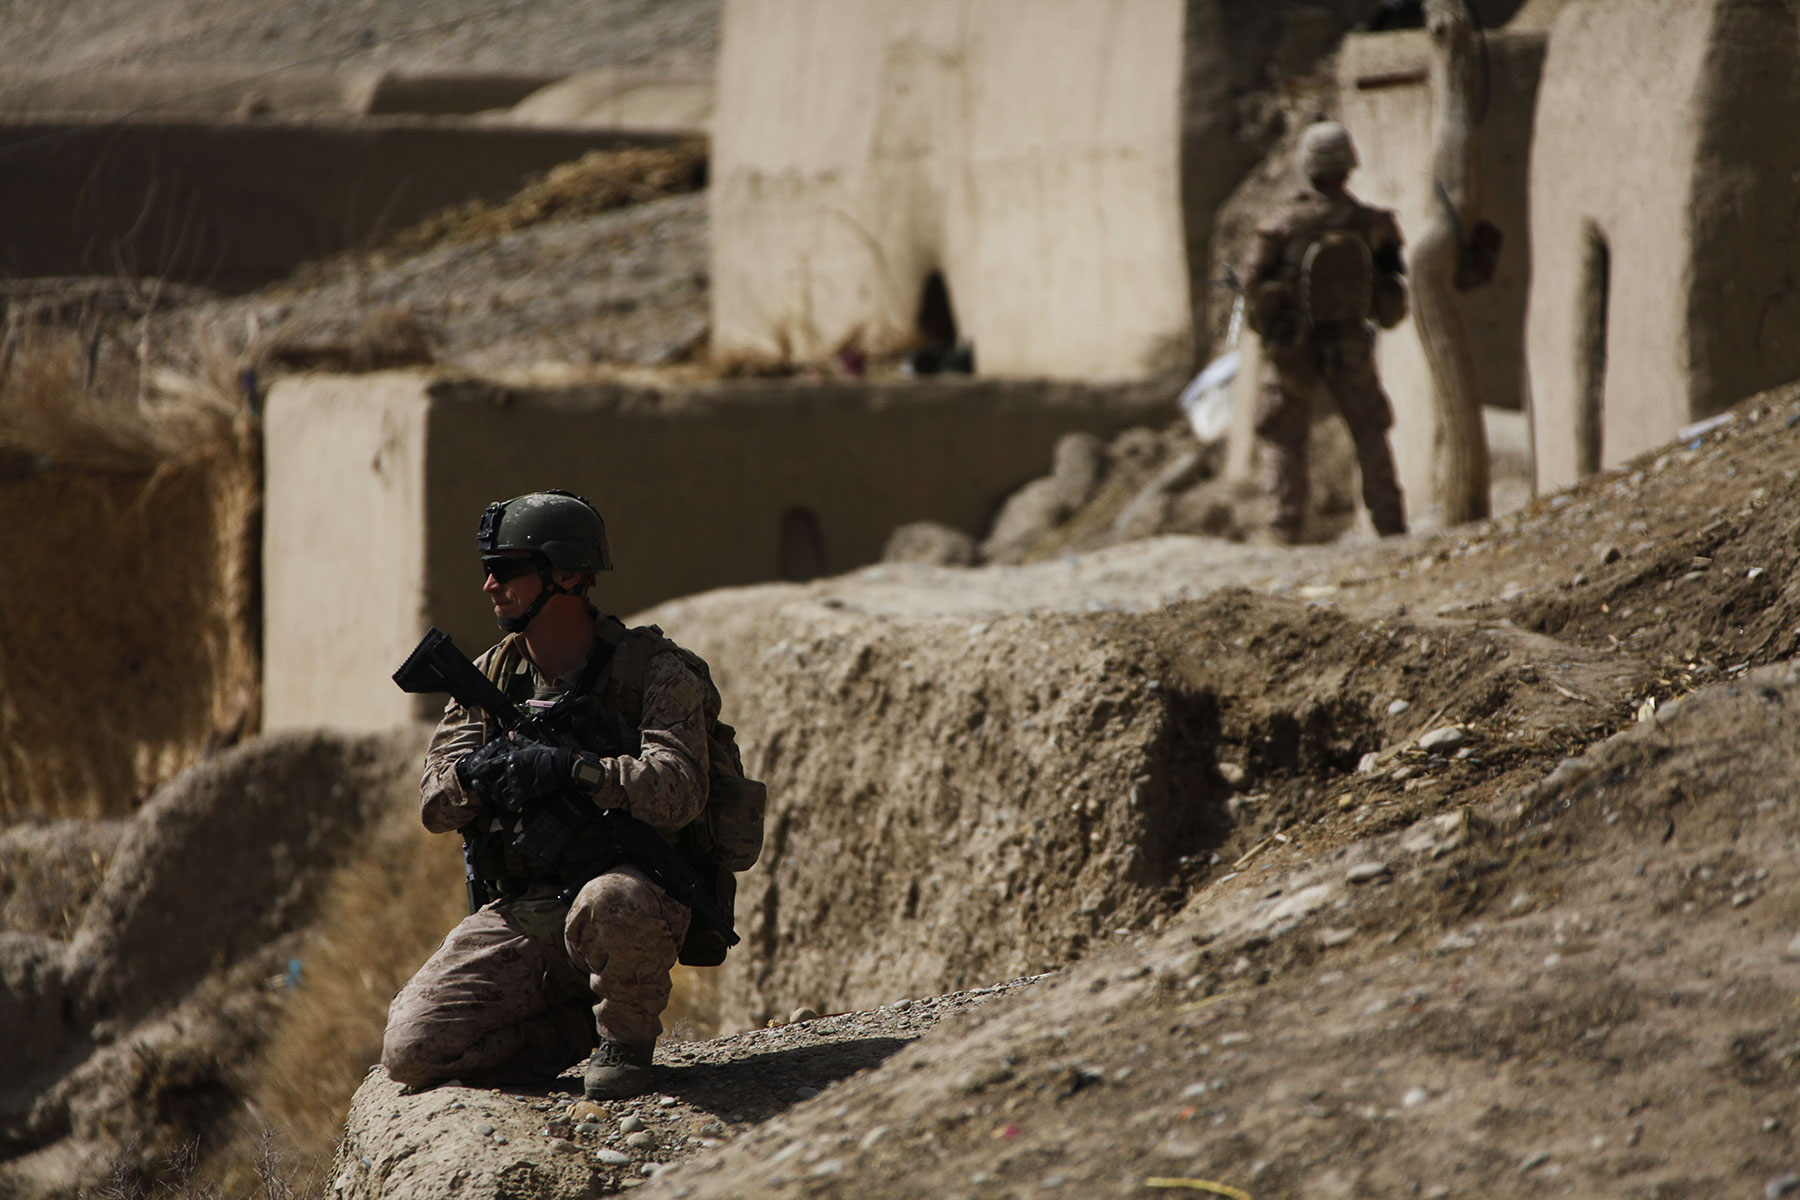 Peter Isackson, Daily Devil's Dictionary, Afghanistan news, US War in Afghanistan, US military-industrial complex, General Mark Milley, Biden Afghanistan withdrawal, Donald Trump Afghanistan news, US war on terror, Afghanistan war accountability